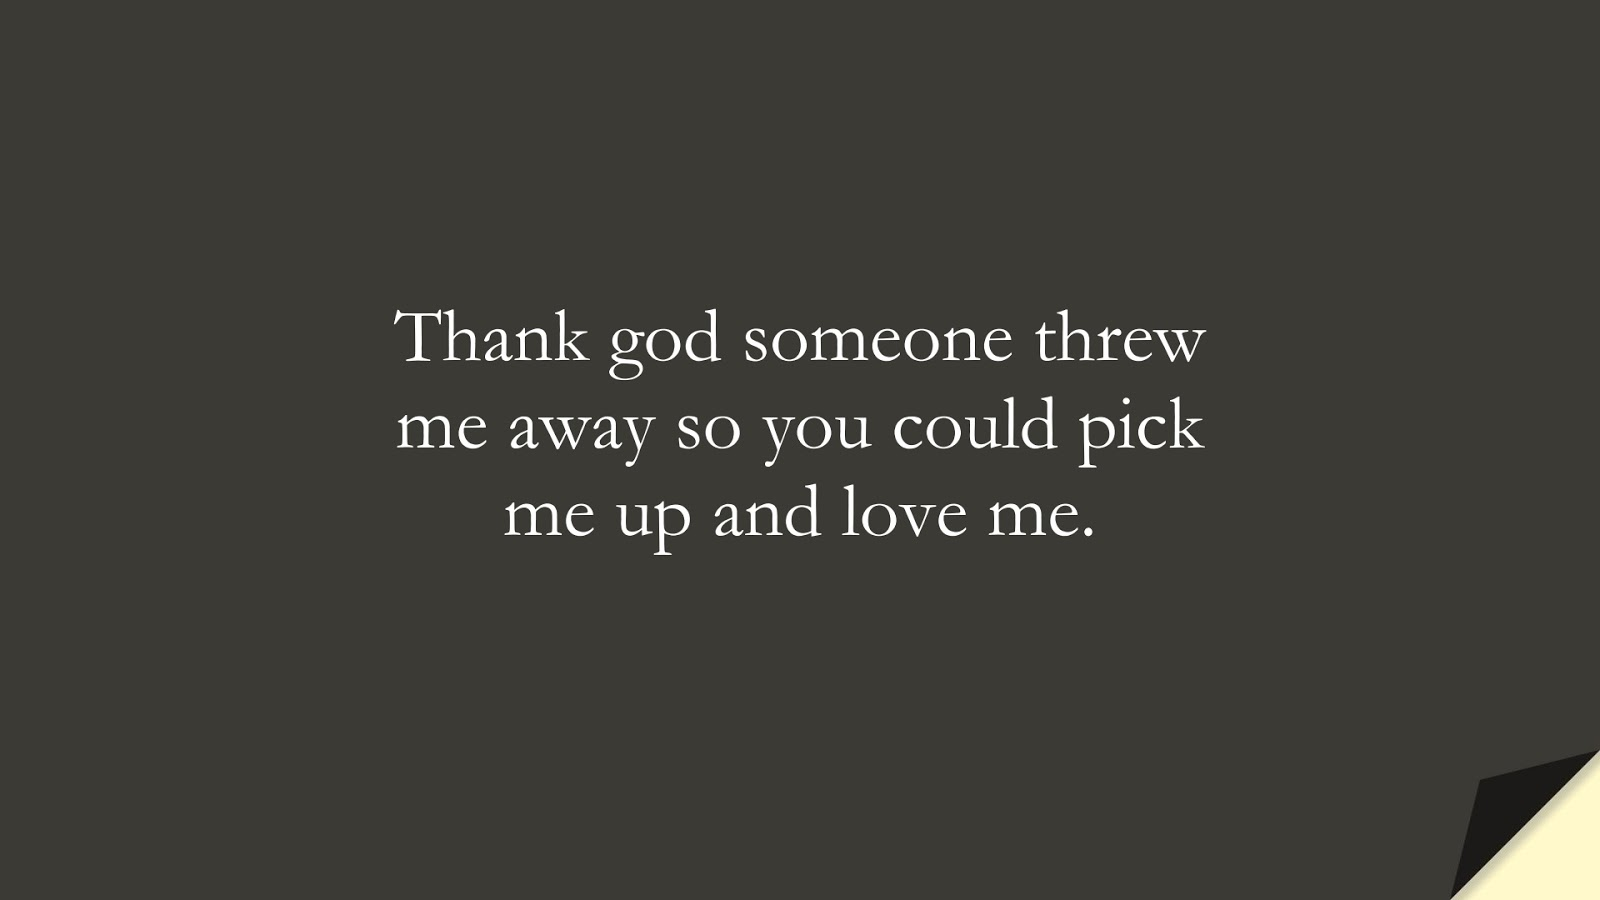 Thank god someone threw me away so you could pick me up and love me.FALSE